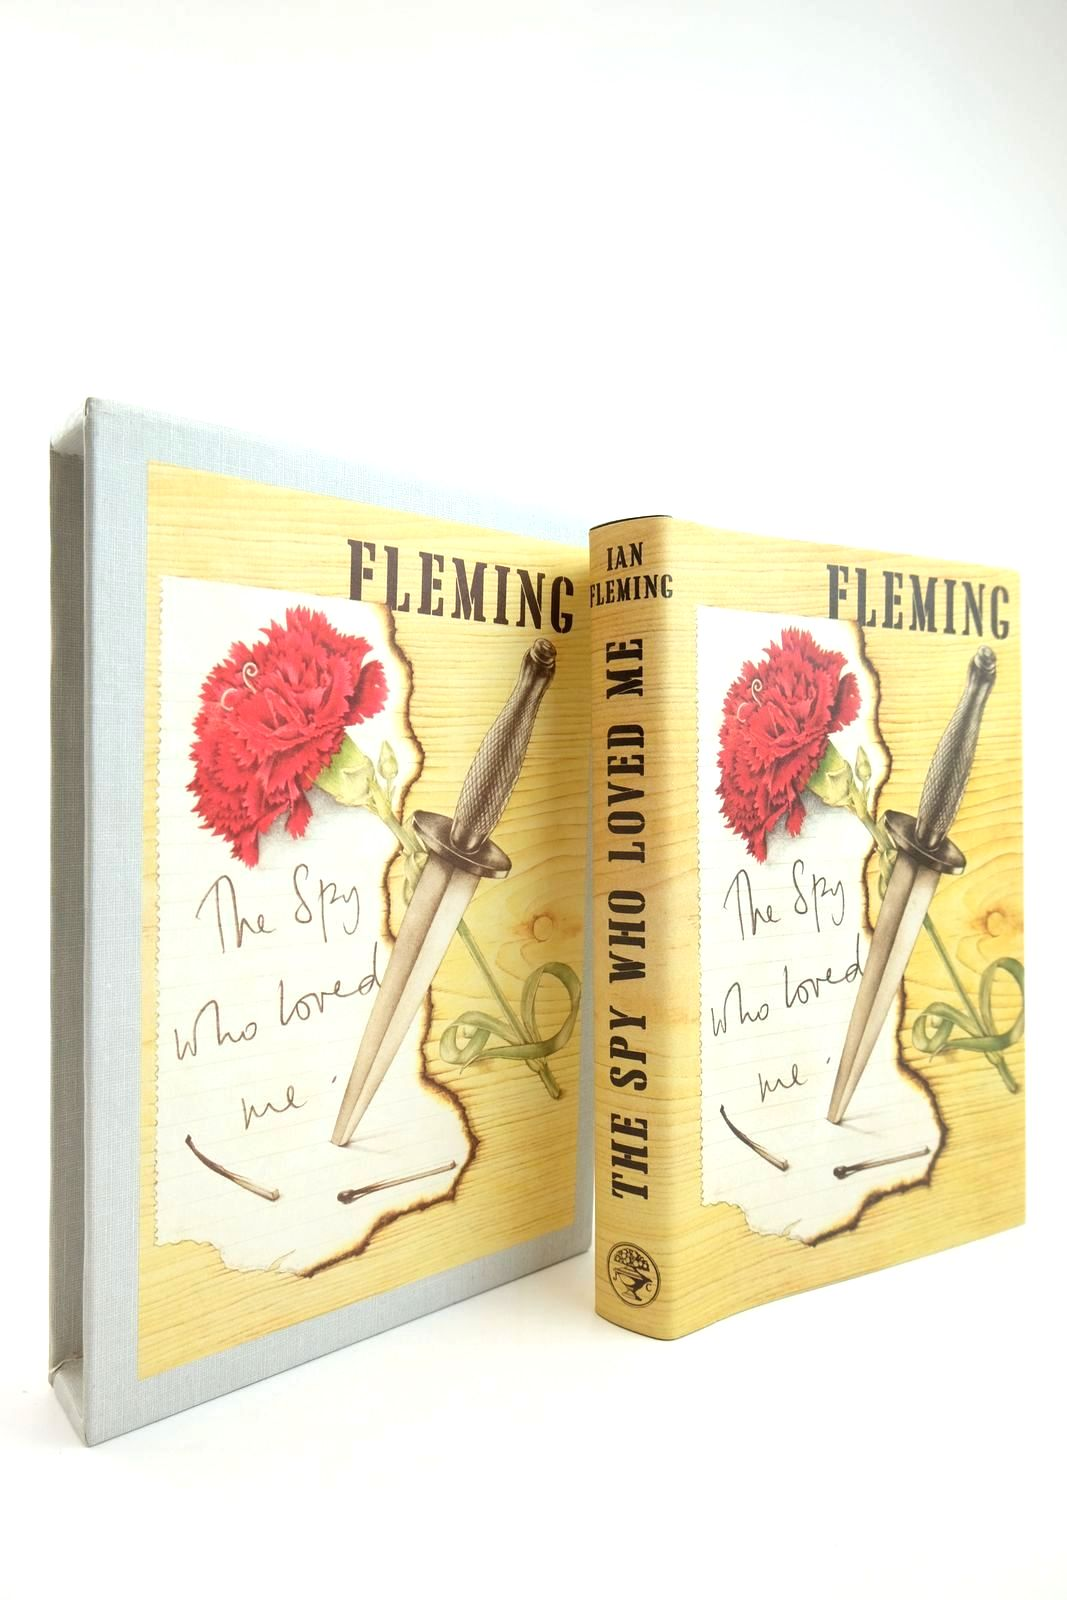 Photo of THE SPY WHO LOVED ME written by Fleming, Ian published by The First Edition Library, Jonathan Cape (STOCK CODE: 2134196)  for sale by Stella & Rose's Books